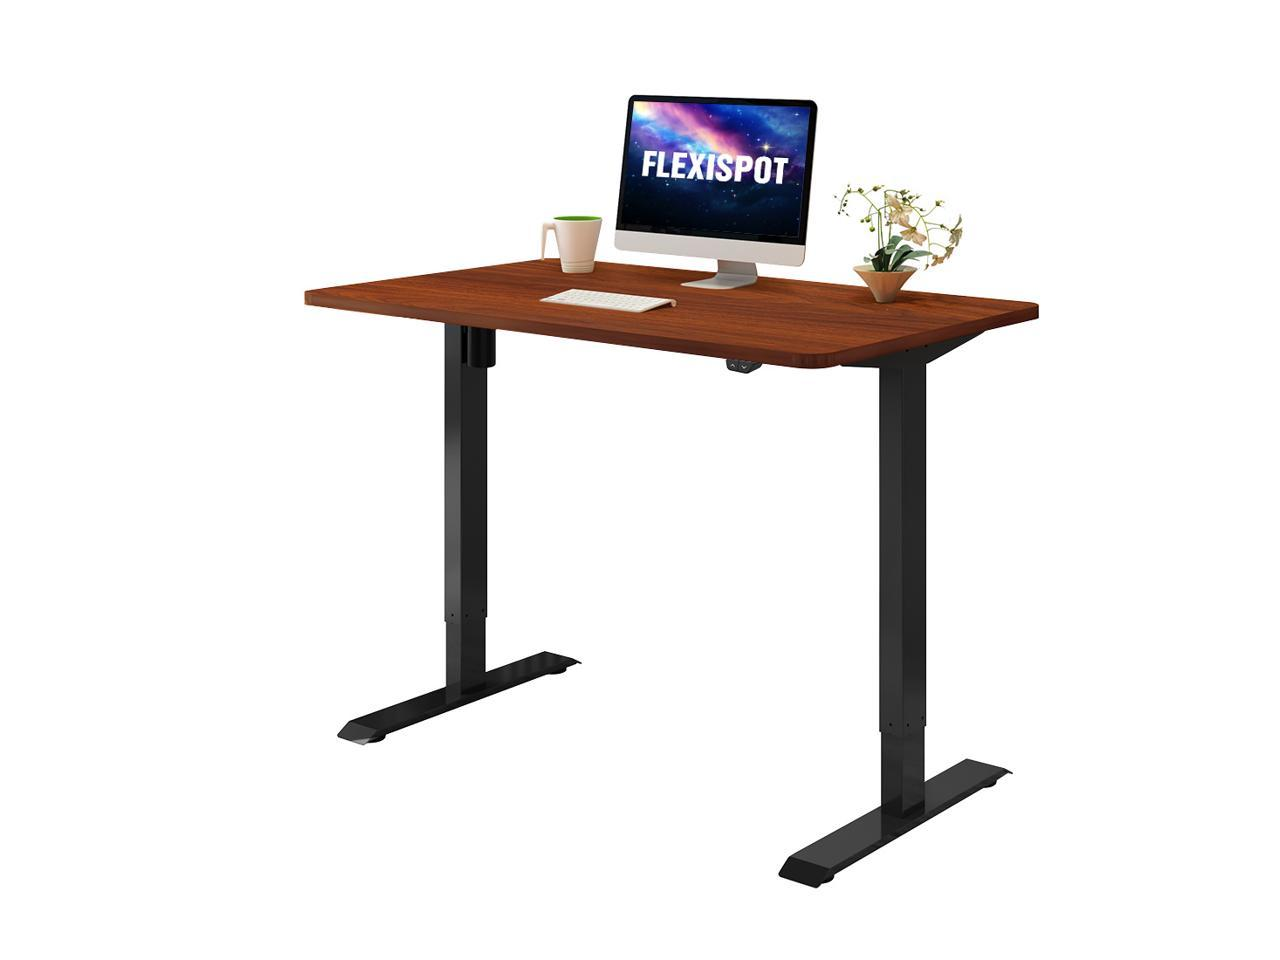 Universal Table Top MDF Desk Top Replacement for Home and Office Desk Frames